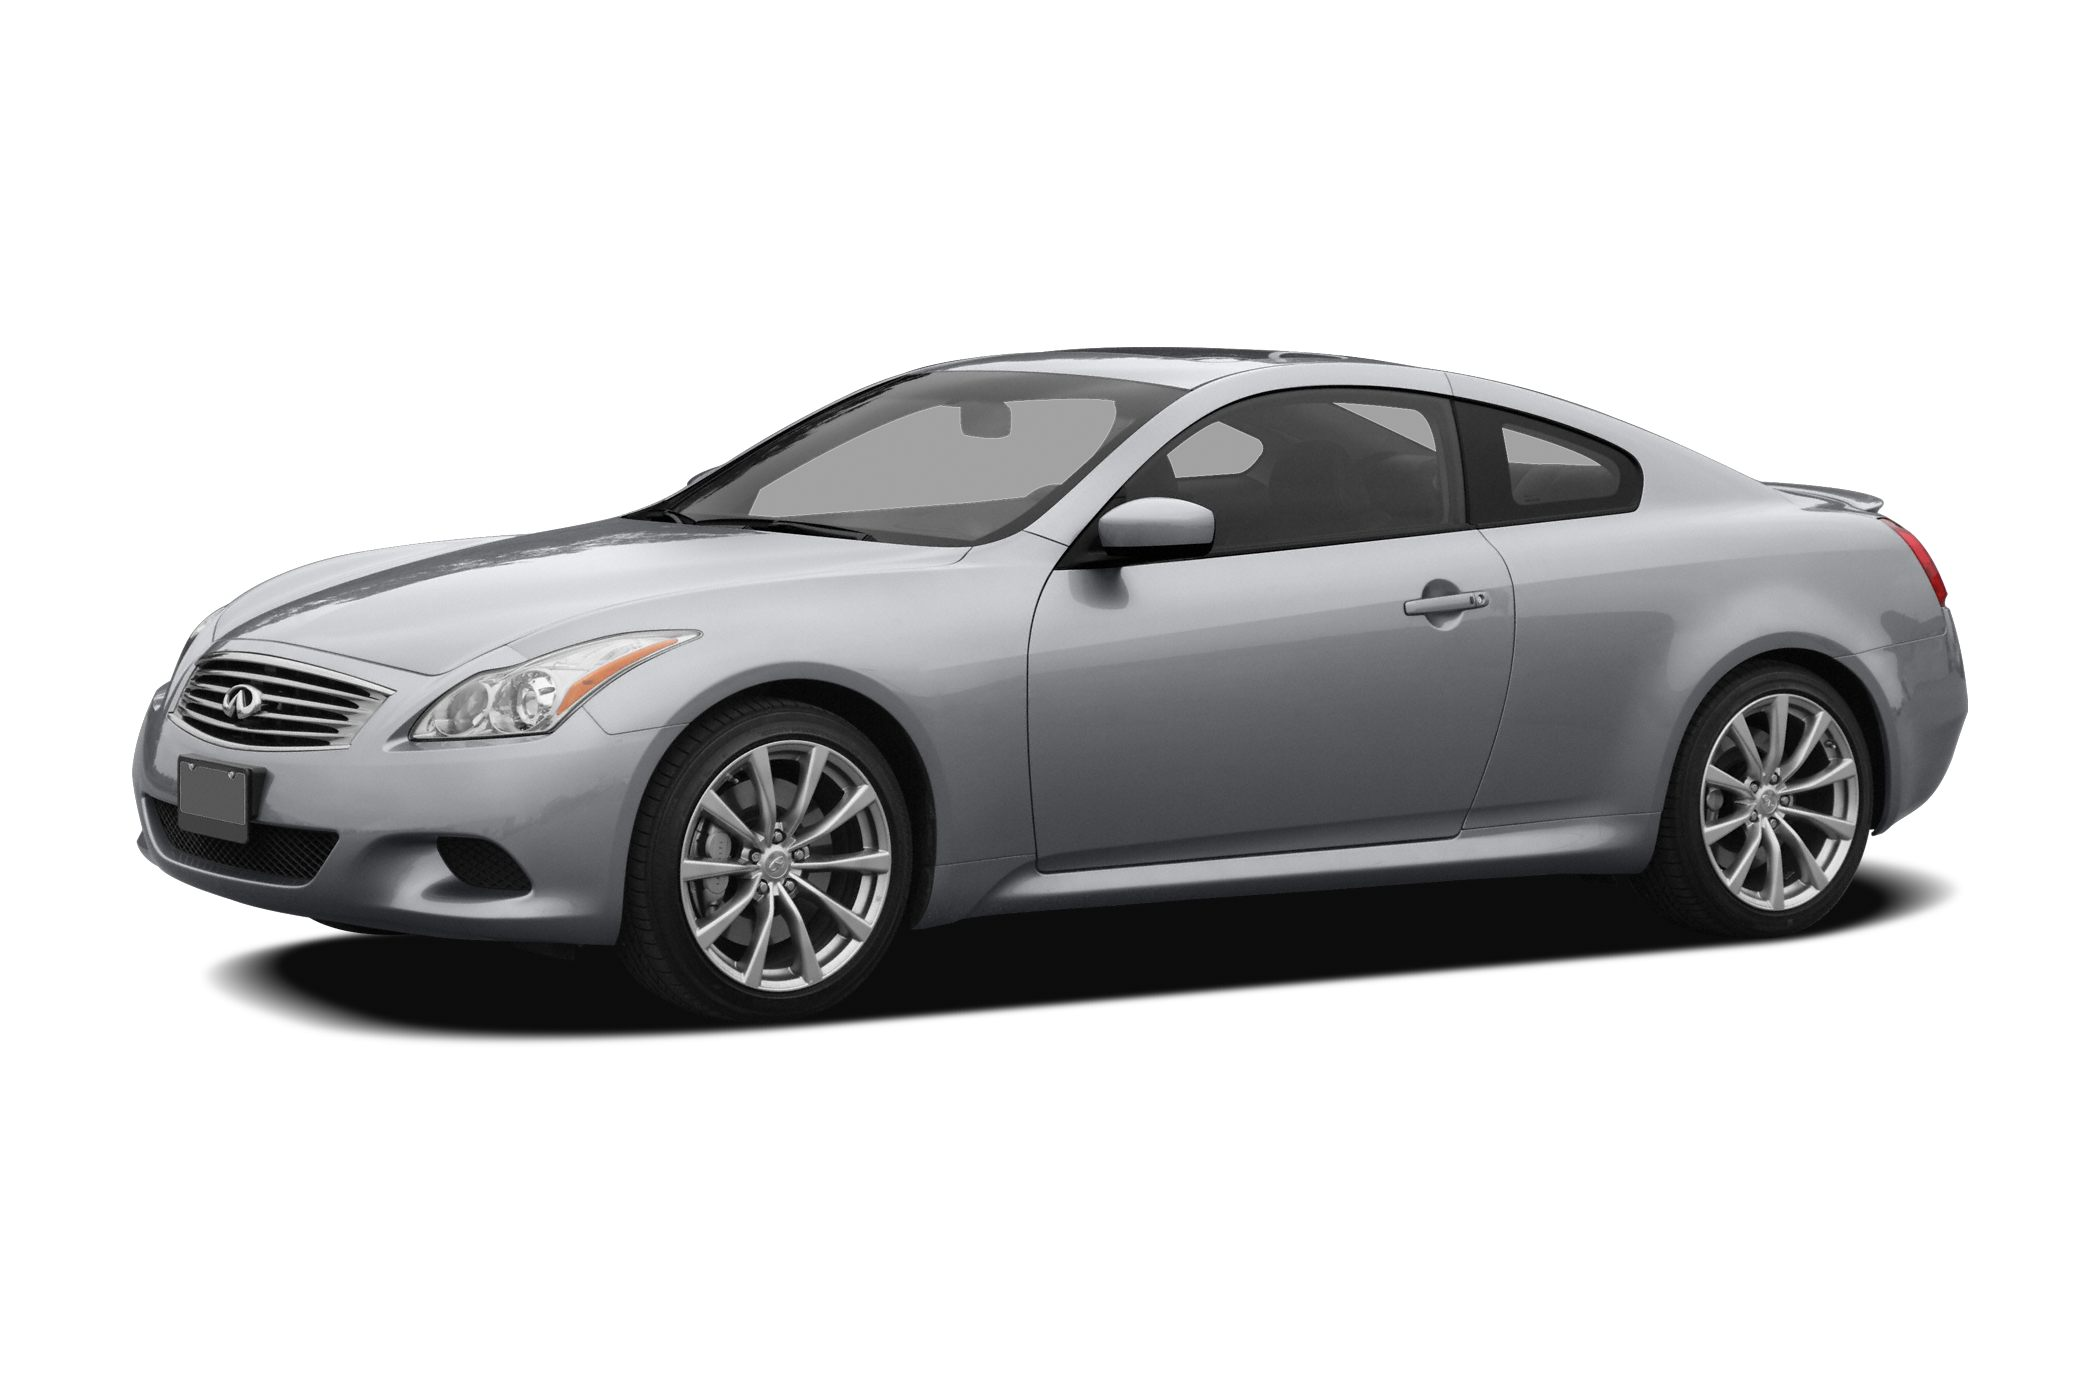 2008 Infiniti G37  They say All roads lead to Rome but who cares which one you take when you are ha